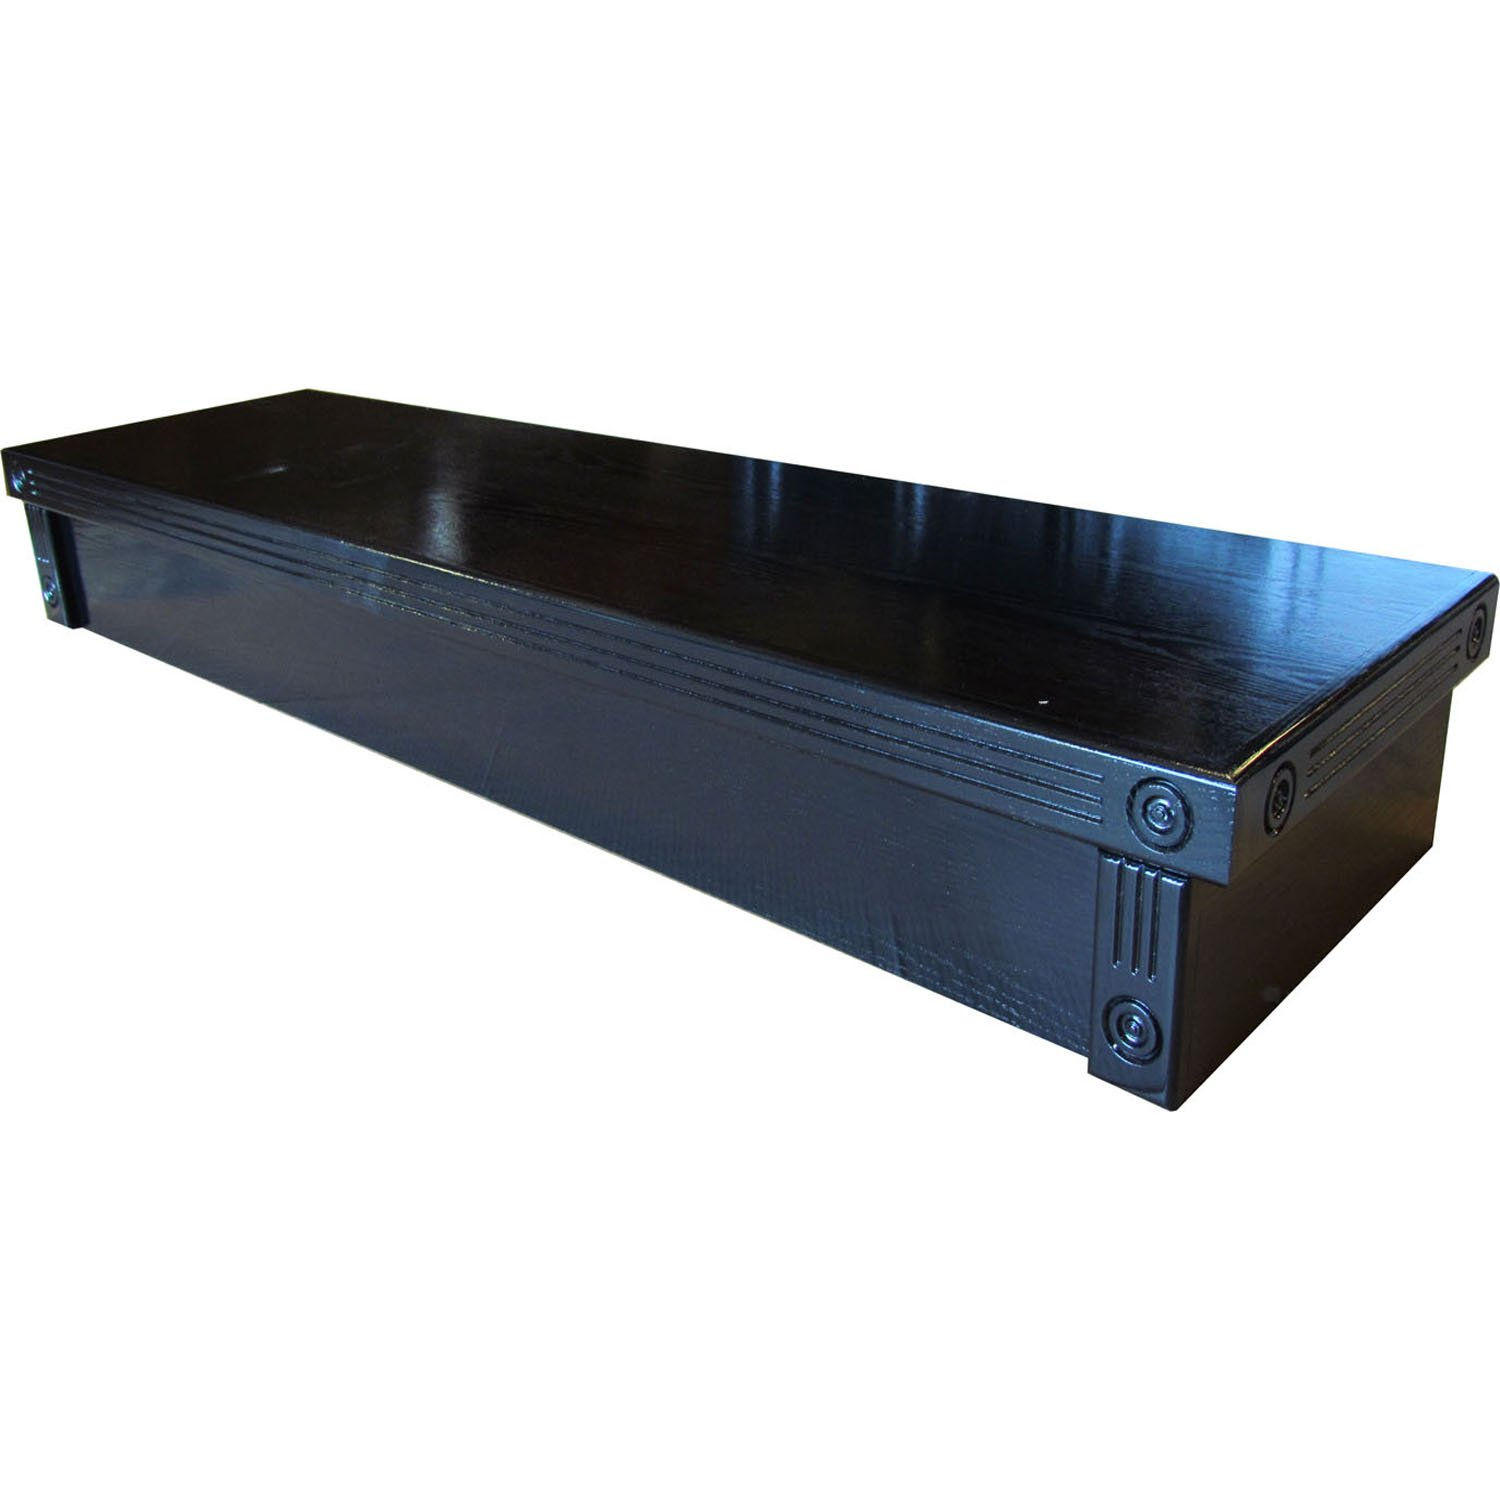 Aquarium fish tank hoods - R J Enterprises 72x18 Black Oak Empire Series For Acrylic Aquariums 125 150 Canopy Petco